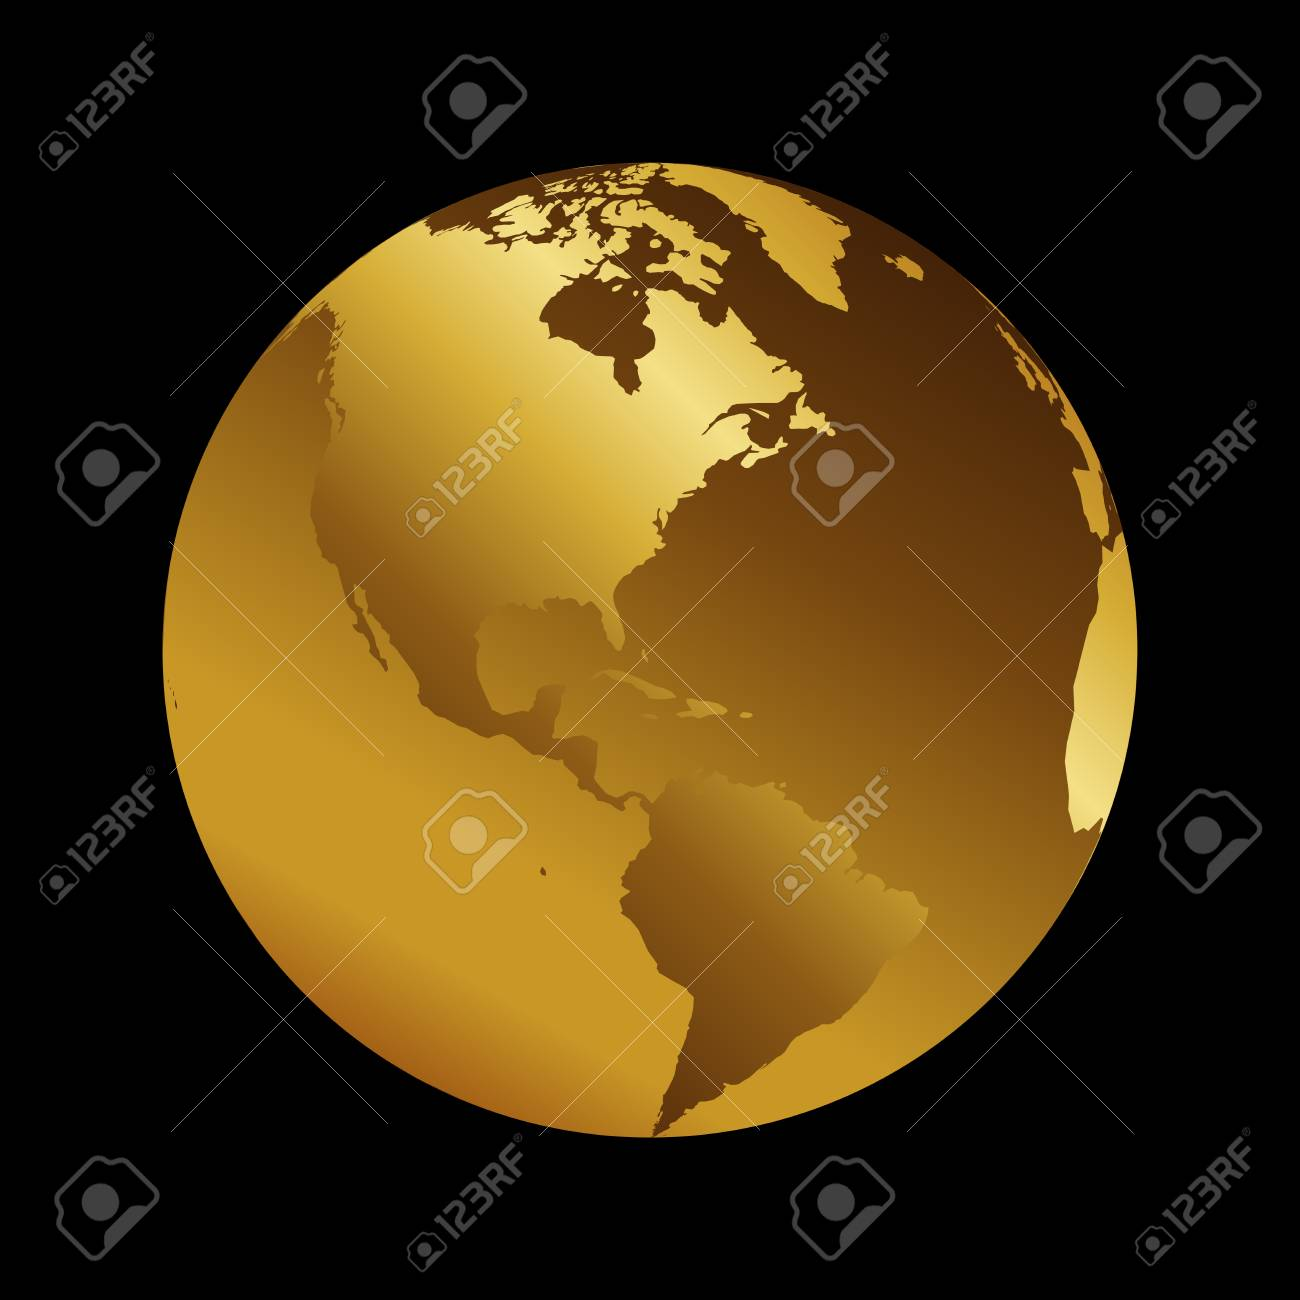 America golden 3d metal planet backdrop view usa and brazil america golden 3d metal planet backdrop view usa and brazil world map vector illustration on gumiabroncs Choice Image